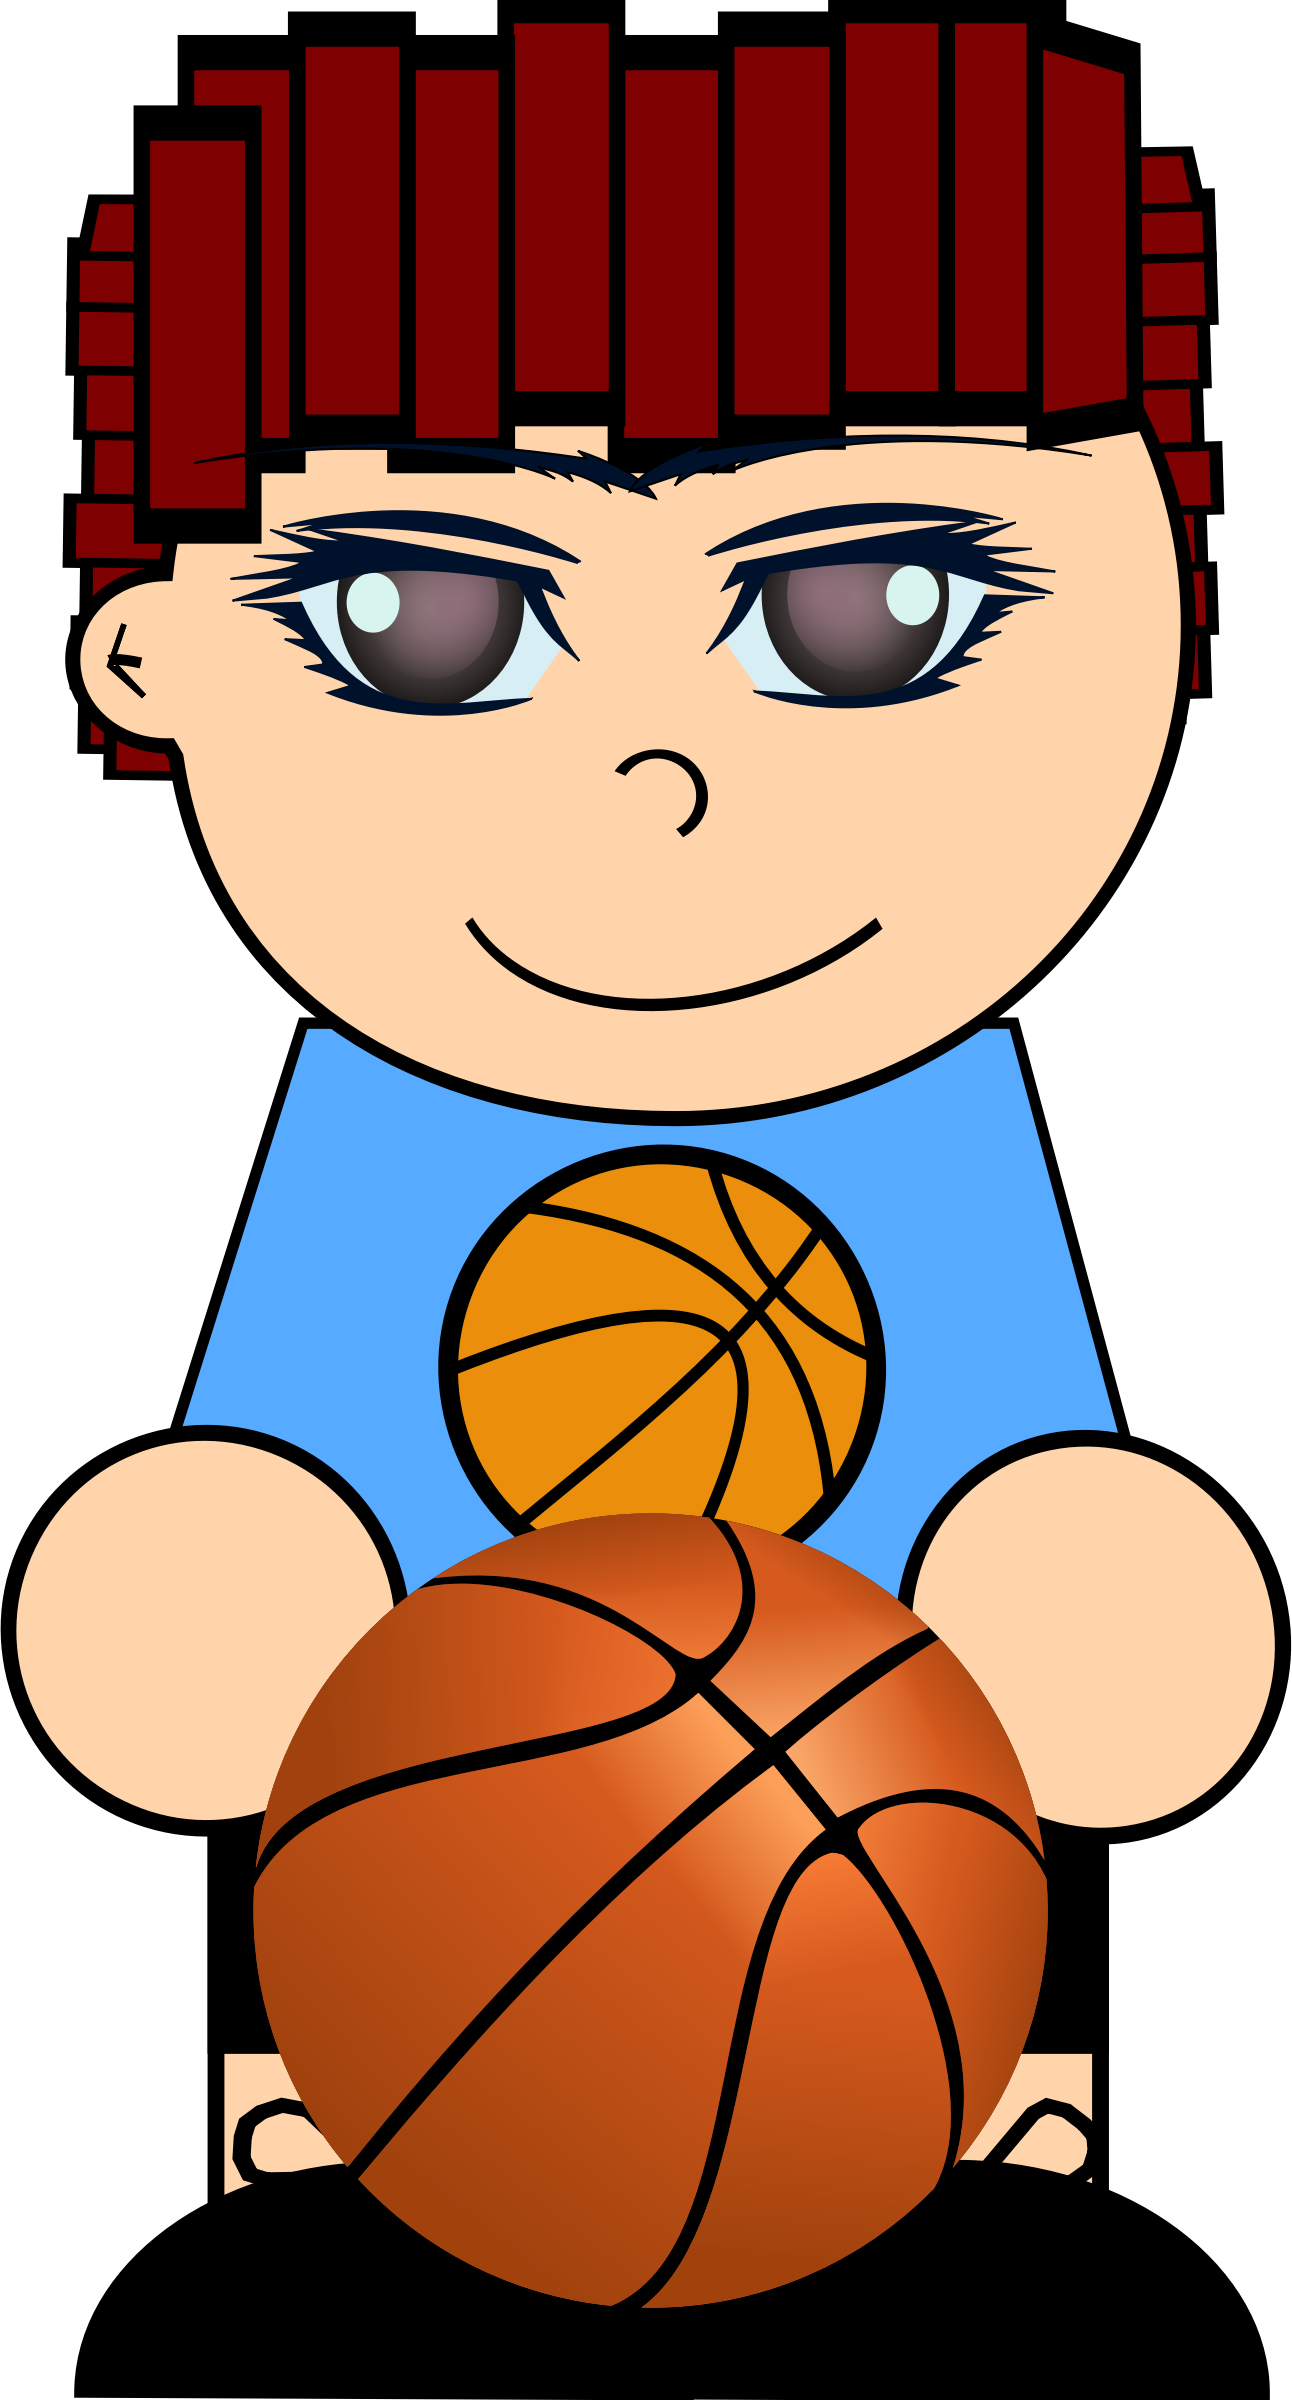 Sad clipart basketball. Boy with big image